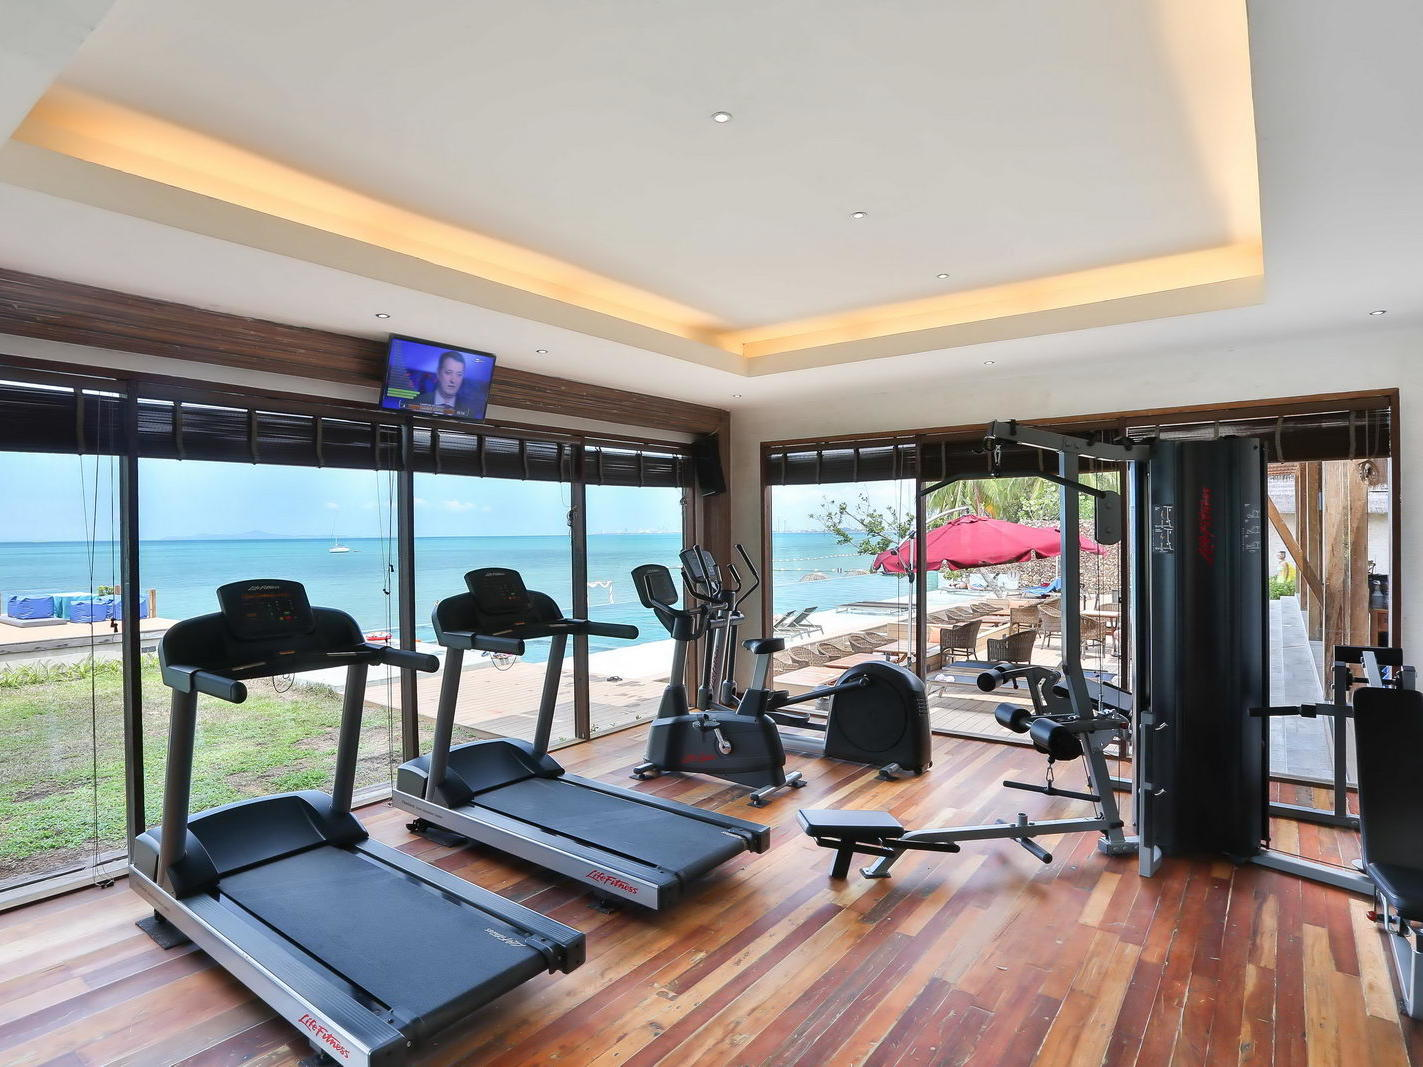 Equipments of Gym at U Hotels and Resorts